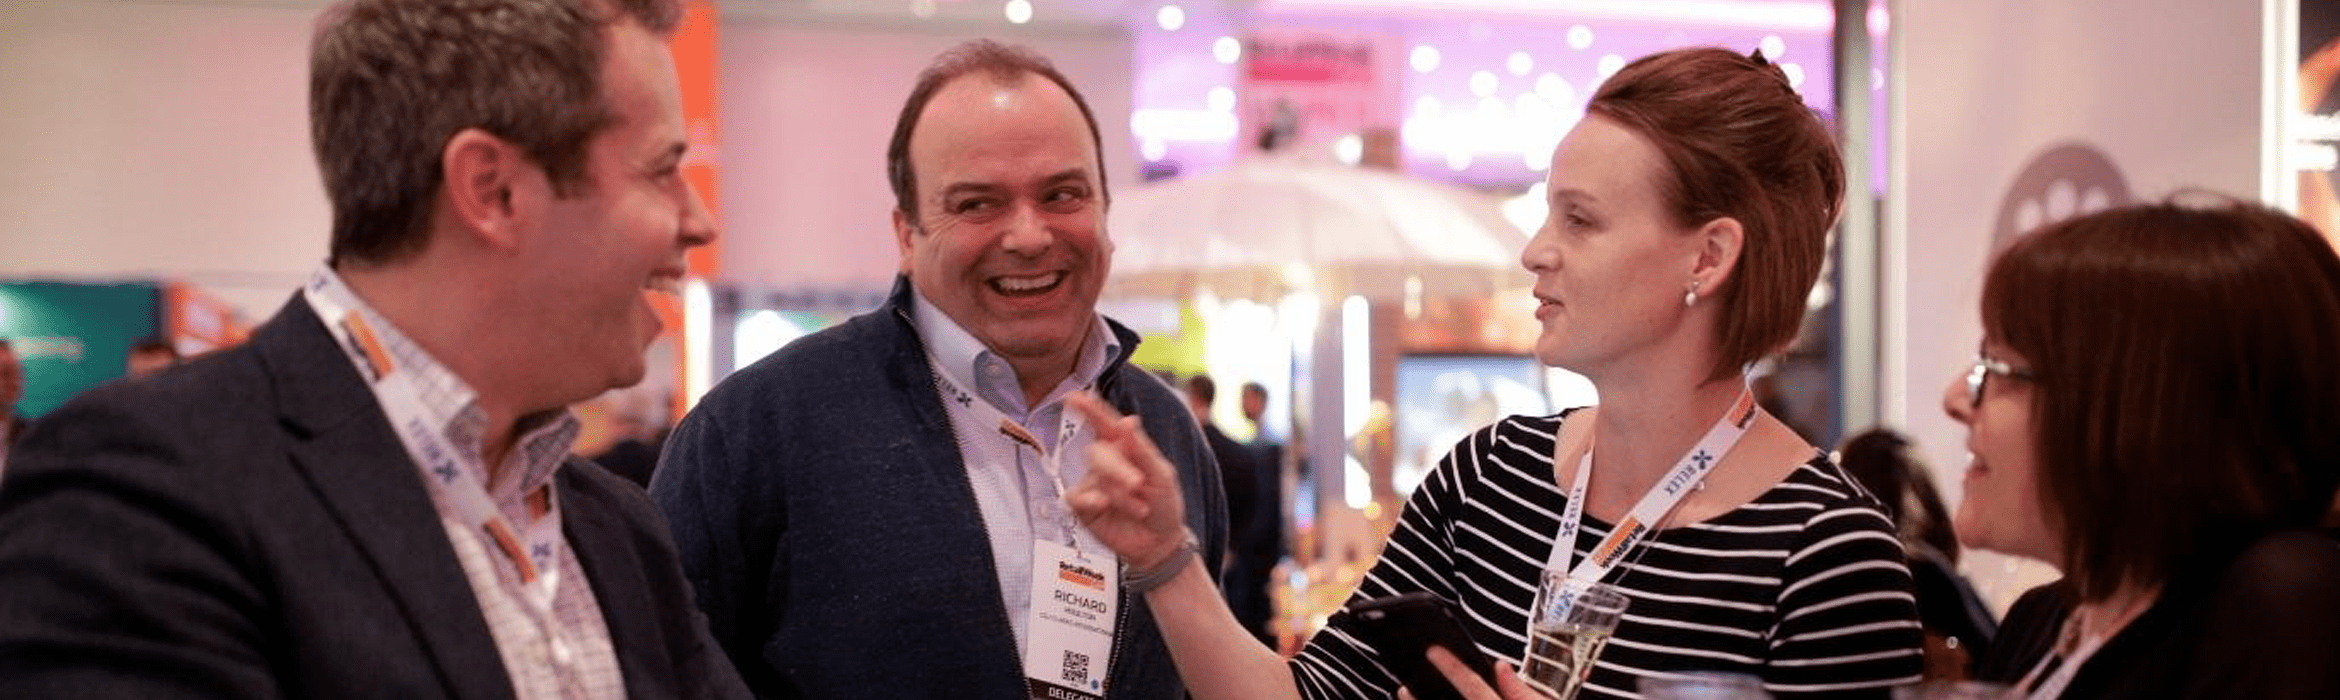 Bother's Guide to Retail Events: Retail Week Live